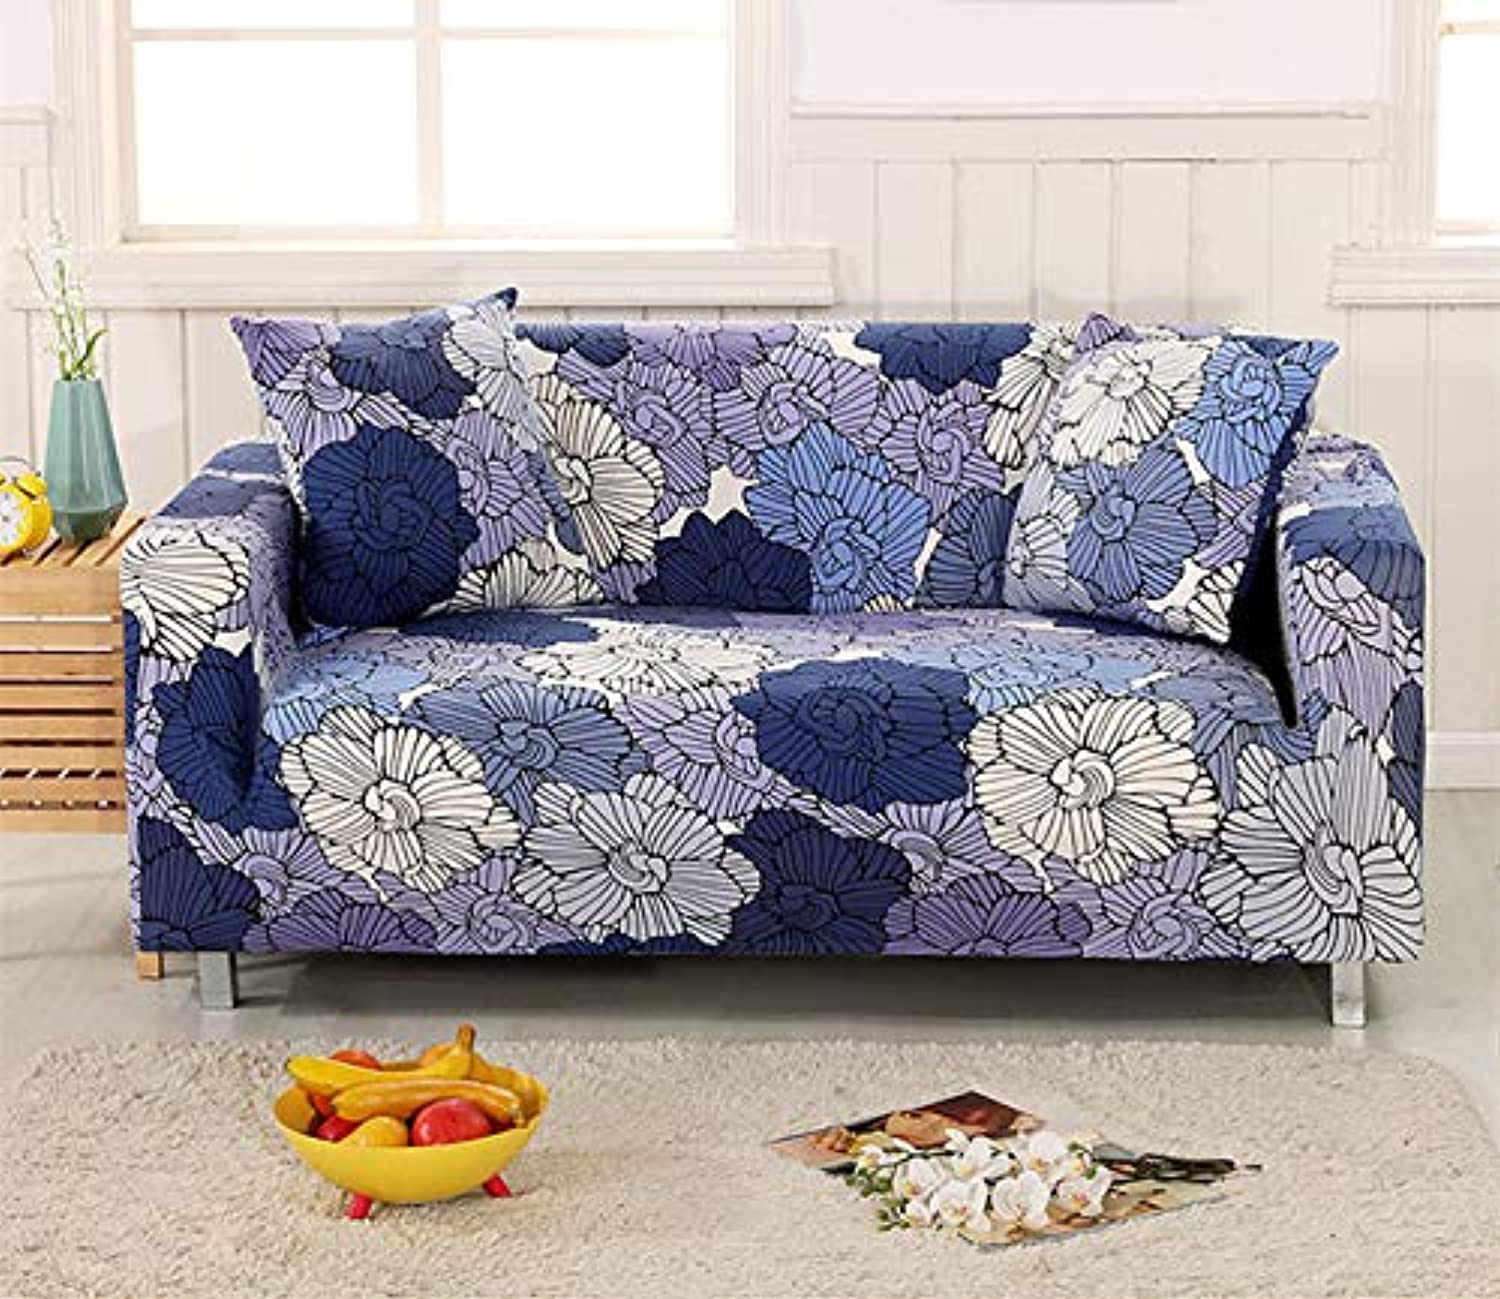 High Quality Couch Cover Sofa Covers for Living Room Lobby Soft Sofa Cover Elastic Universal Seats Cover cubierta para Sofa   LuoLanYun, Single Seater